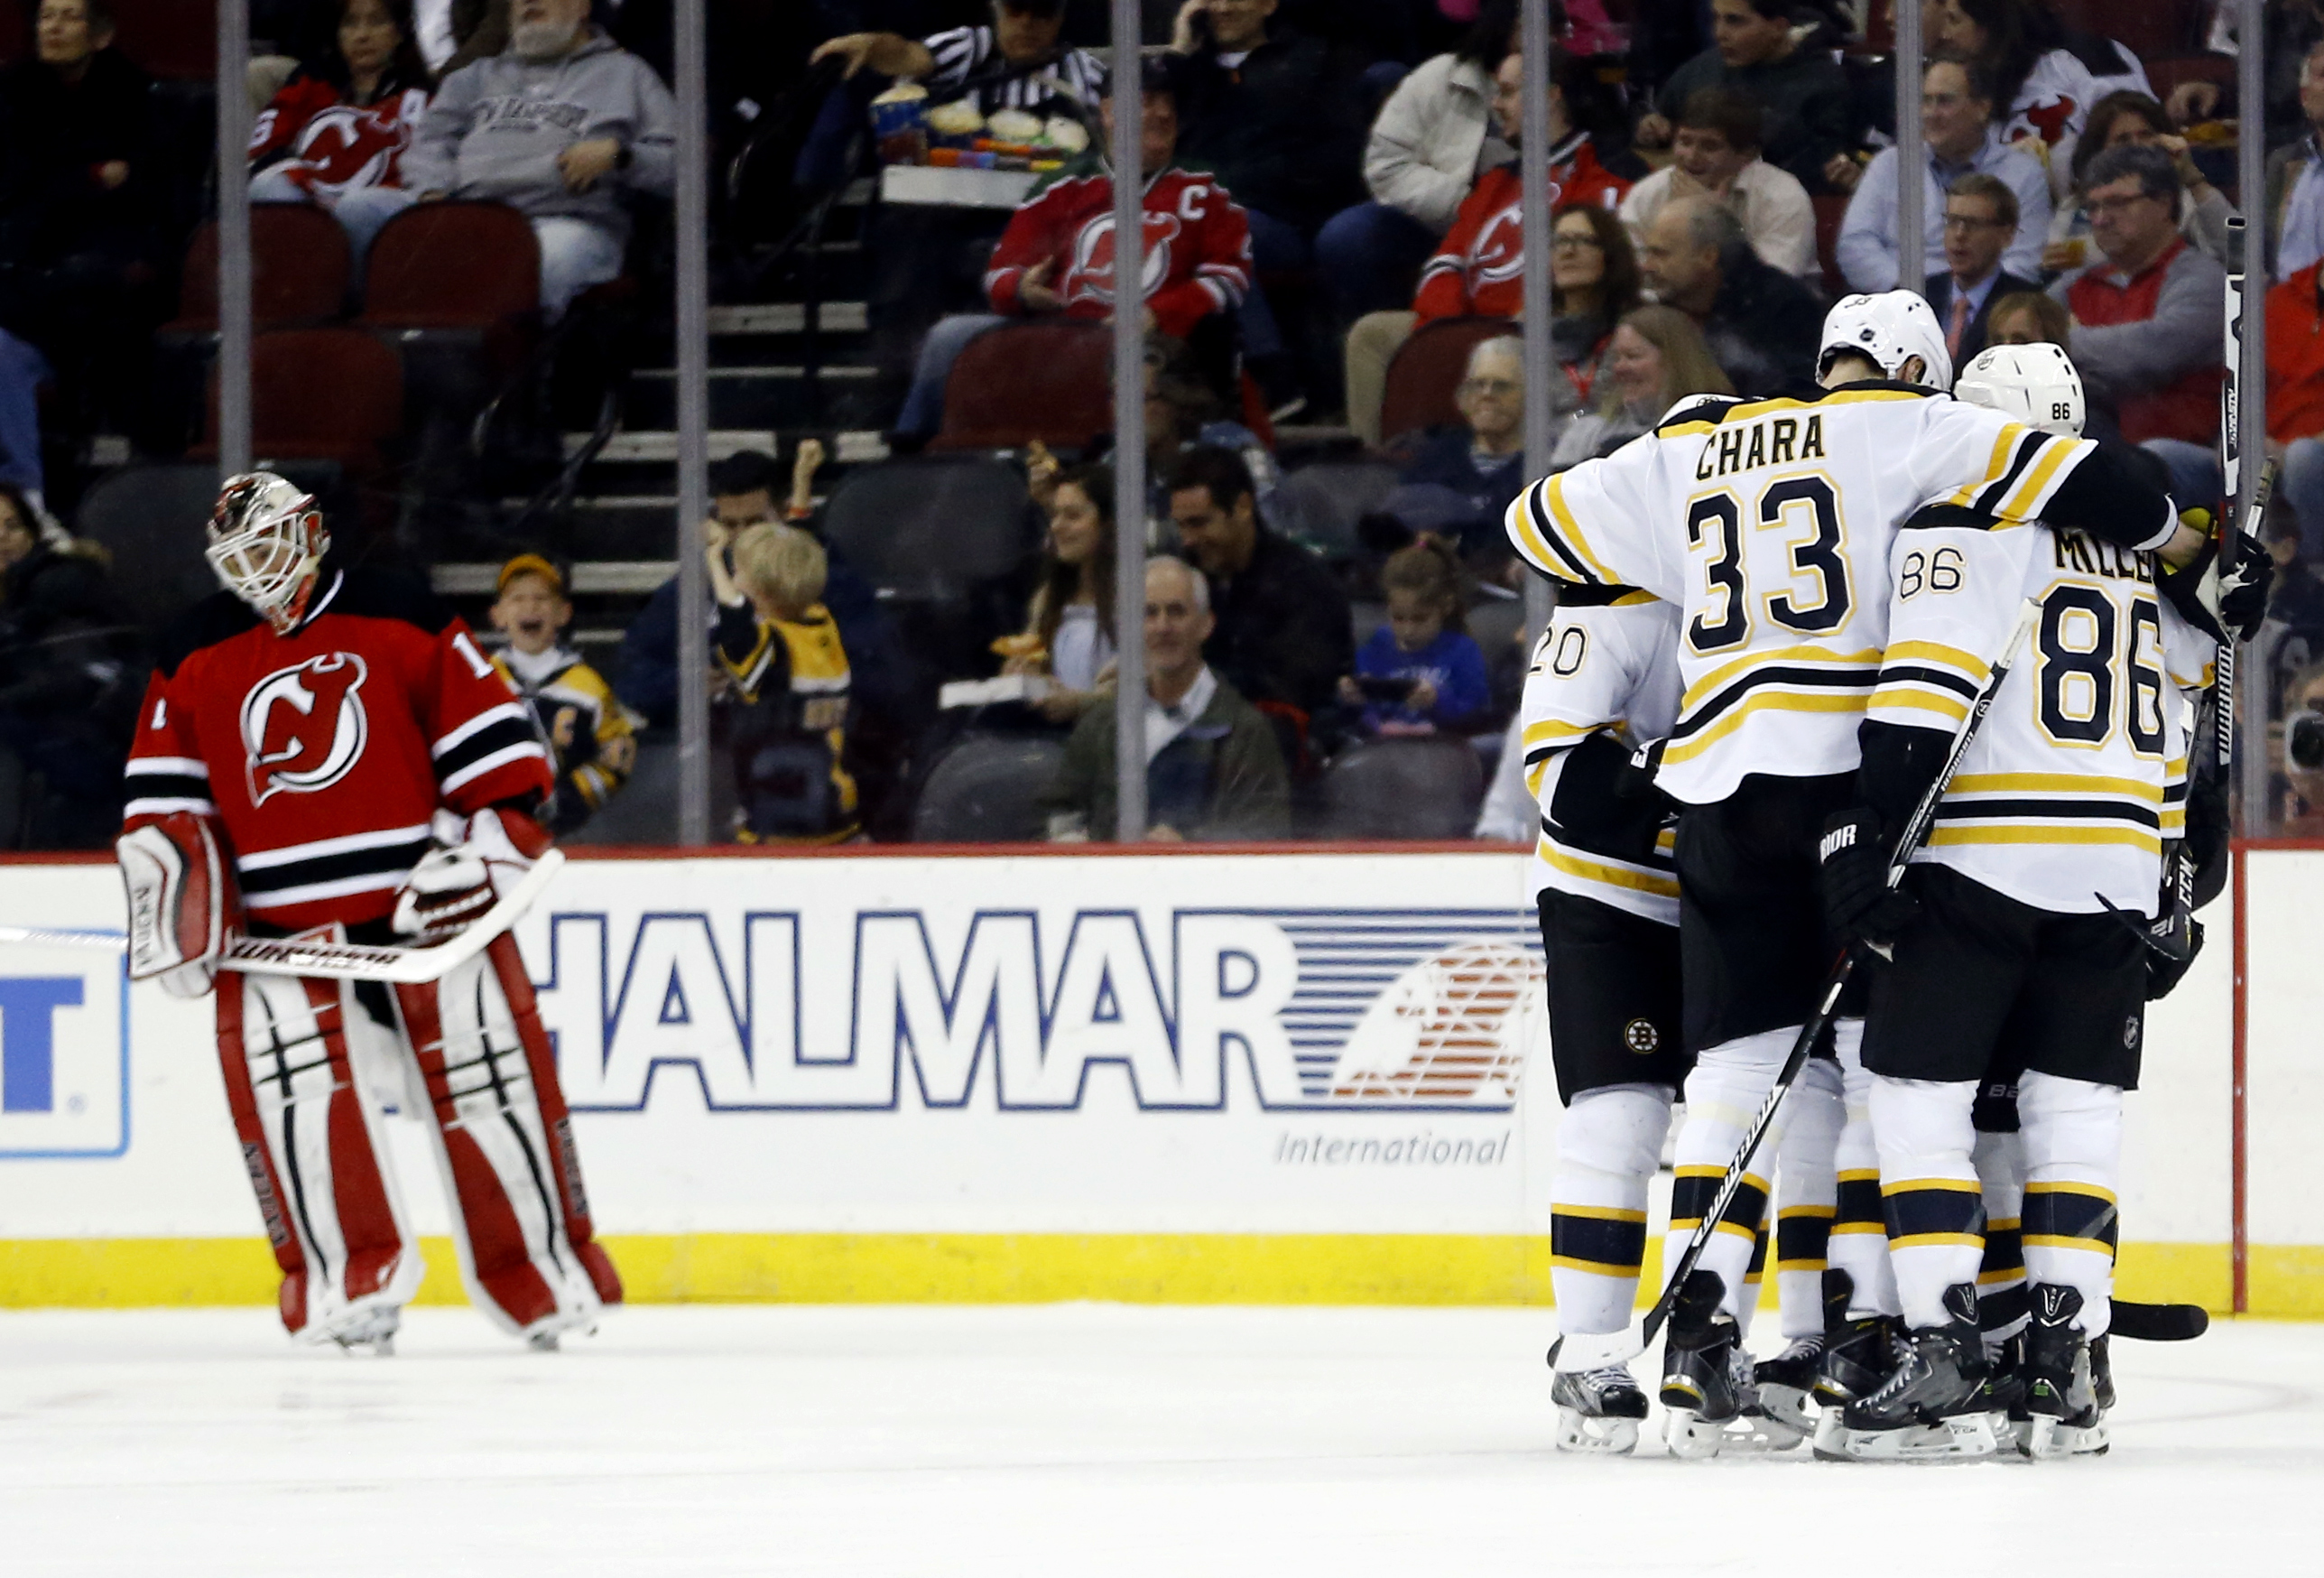 Boston Bruins, right, celebrate after Brad Marchand (63) scored a goal on New Jersey Devils goalie Keith Kinkaid, left, during the second period of an NHL hockey game, Tuesday, March 29, 2016, in Newark, N.J. (AP Photo/Julio Cortez)